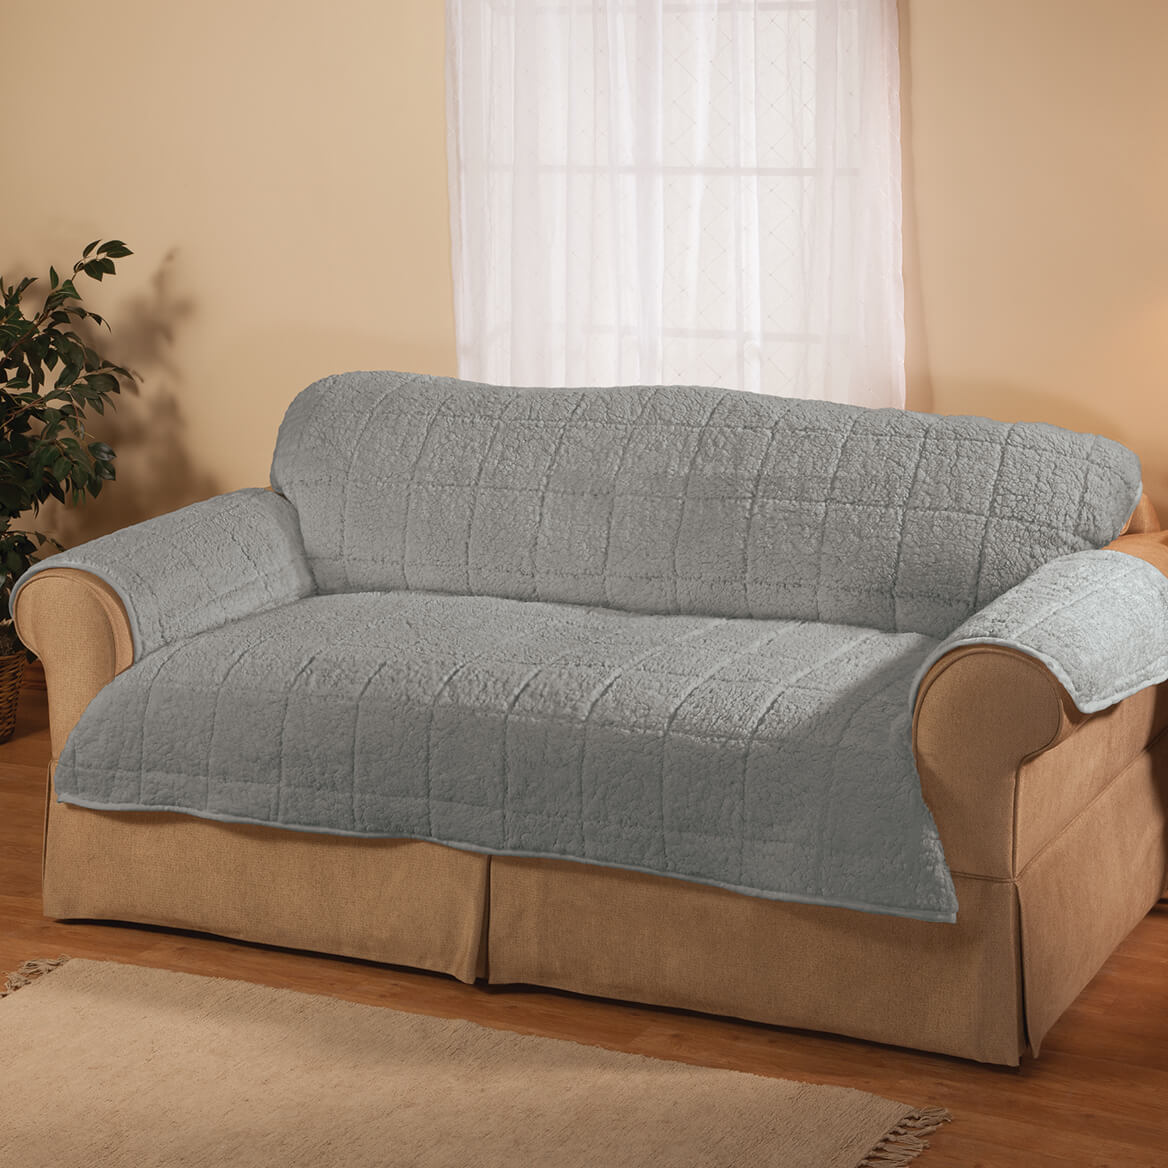 Bradley Sherpa Loveseat Protector by OakRidge-362642